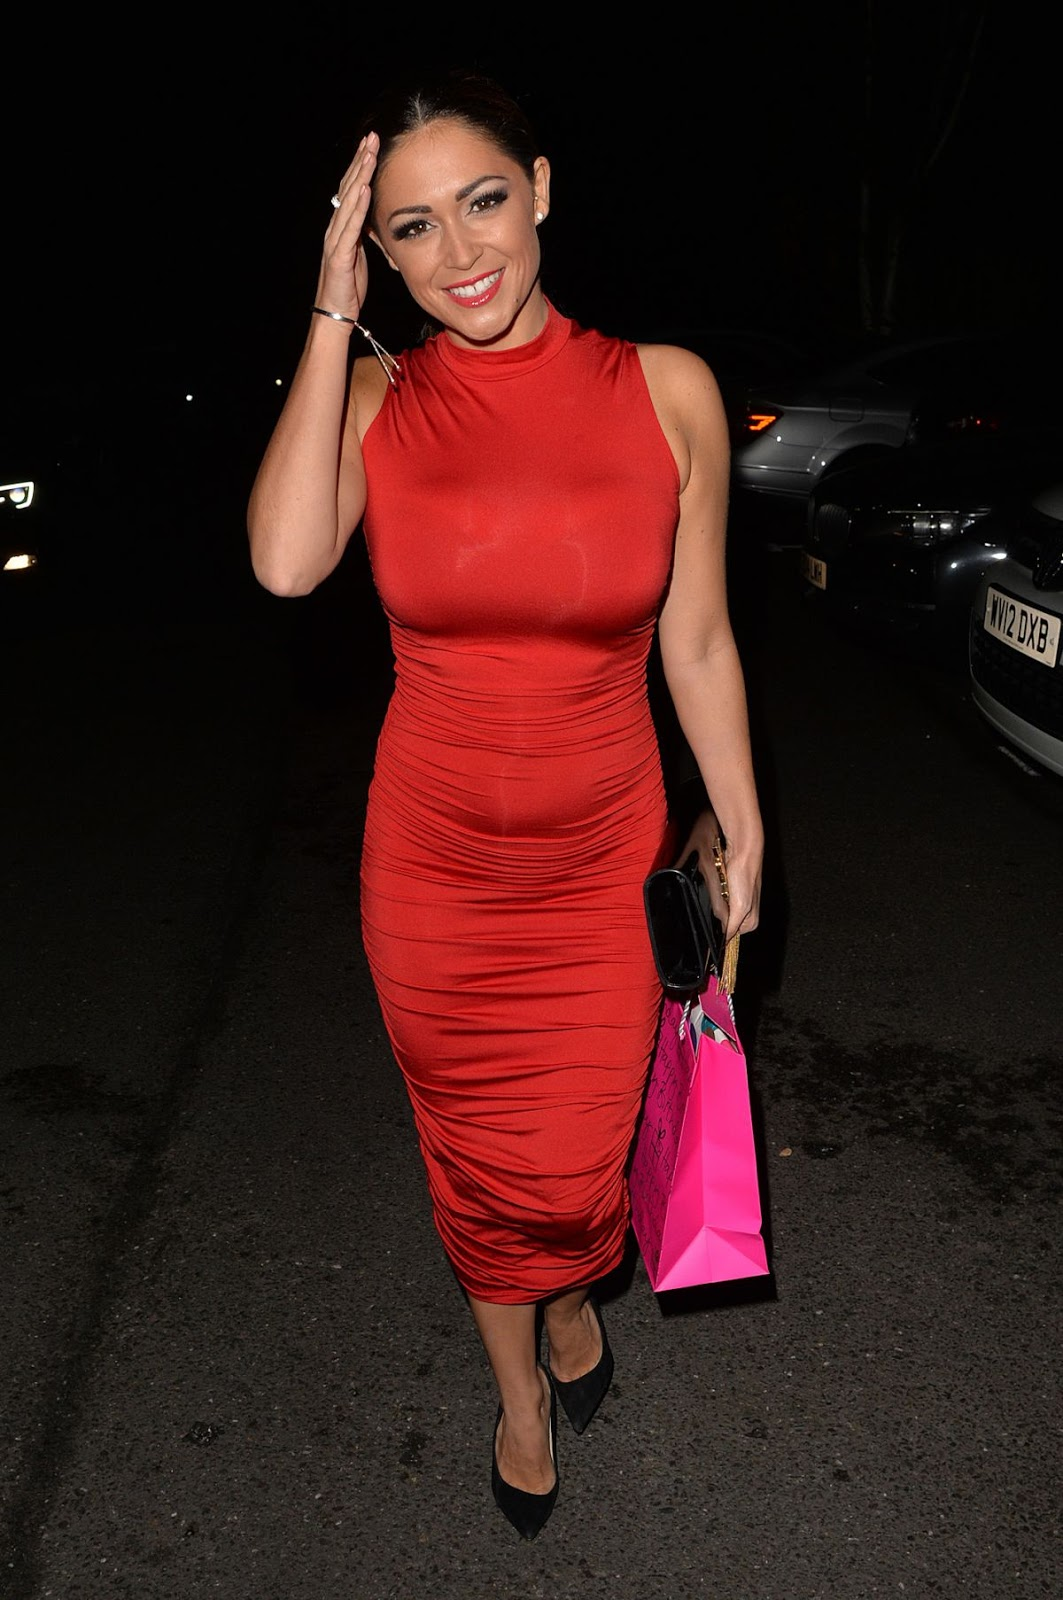 HQ Photos of Casey Batchelor in red hot dress Arrives at Her Birthday Party in Chigwell